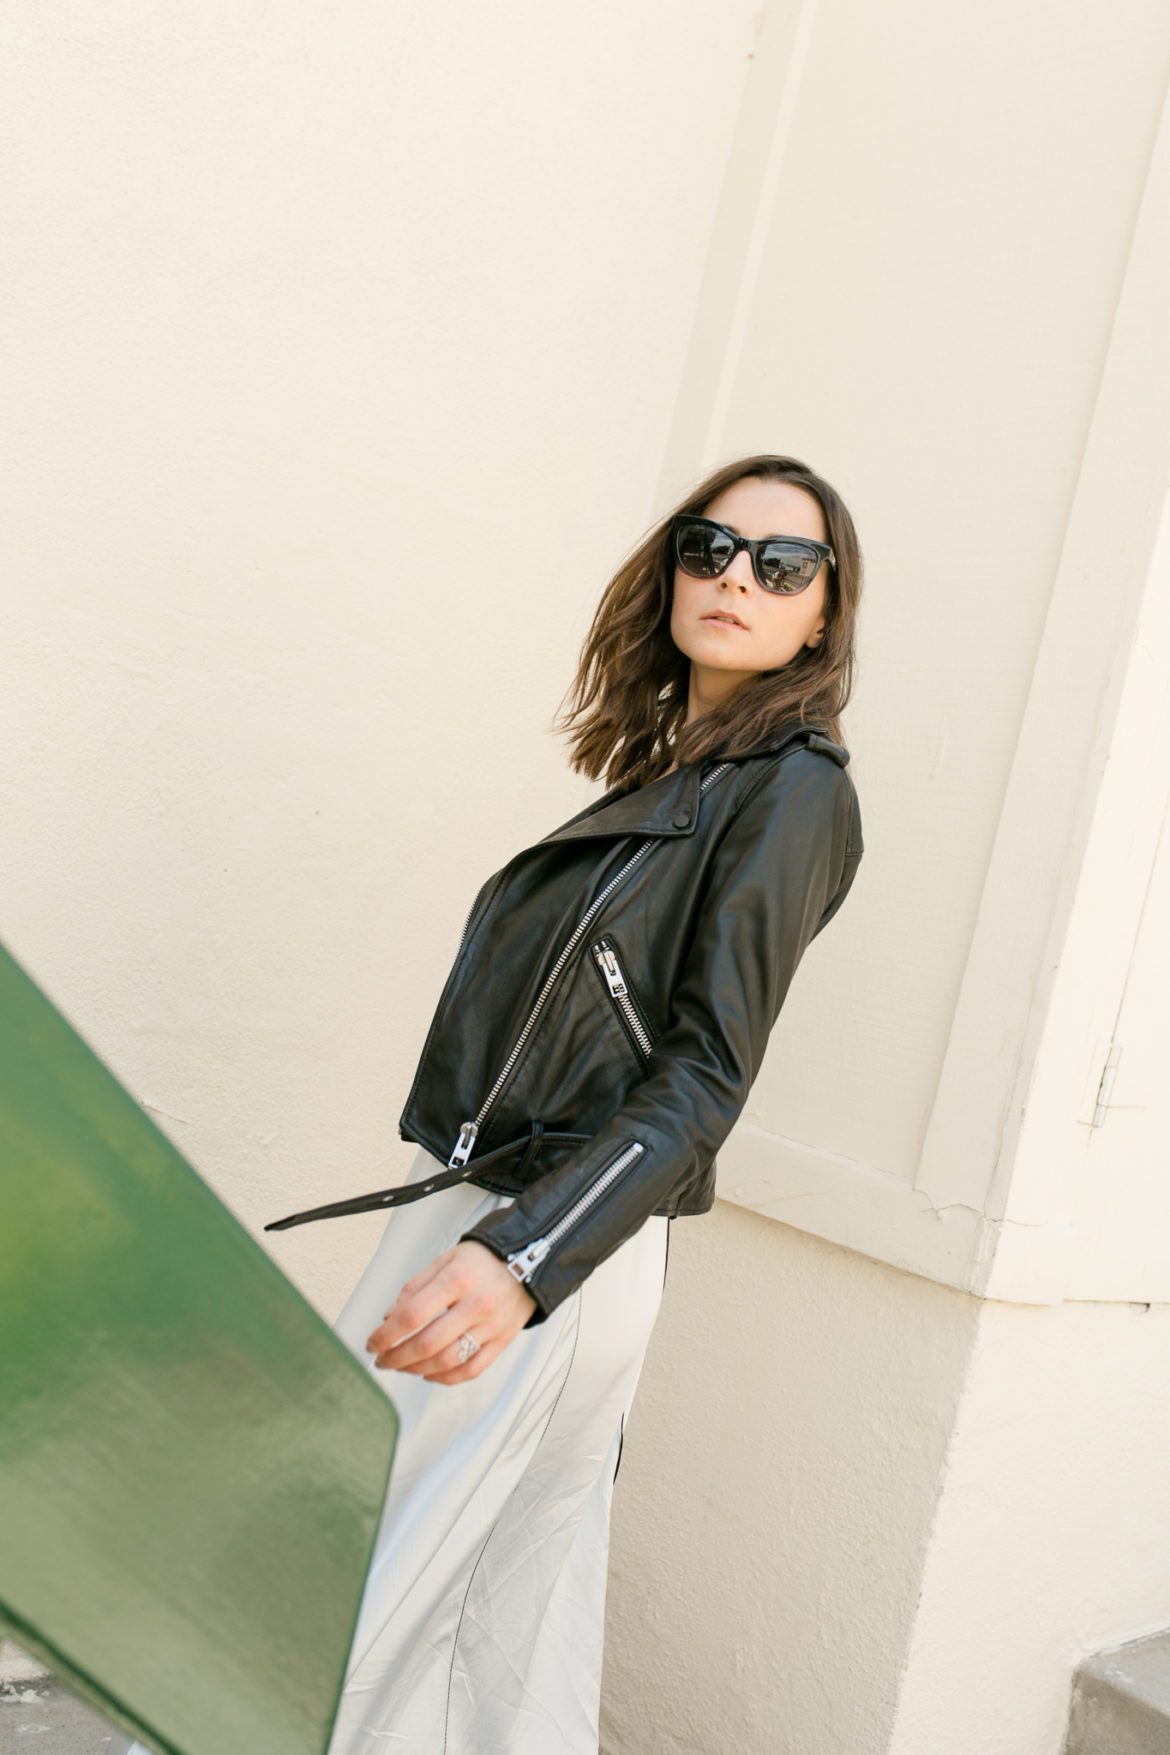 The perfect woman leather jacket ! The leather biker jacket is a French staple: timeless and effortless chic! Selection of the best premium leather jacket at an affordable price